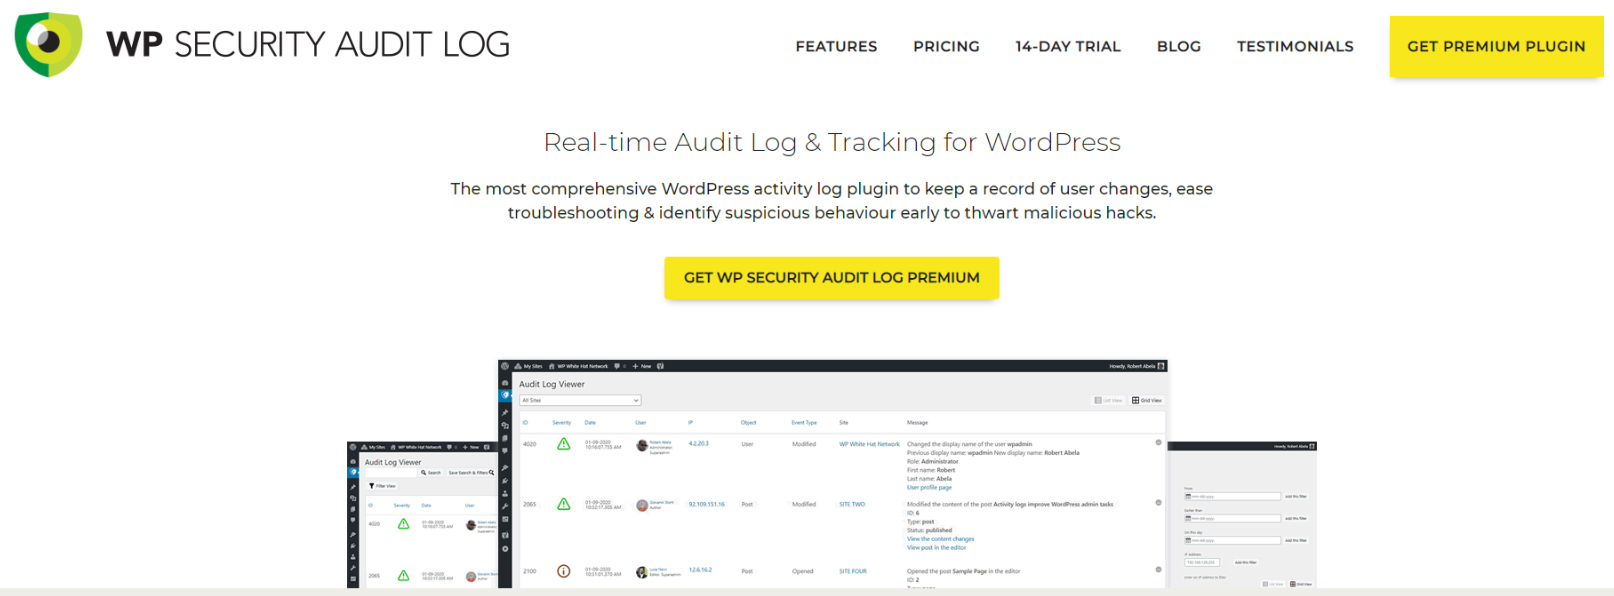 WP Security Audit Log Review - WP Security Audit Log